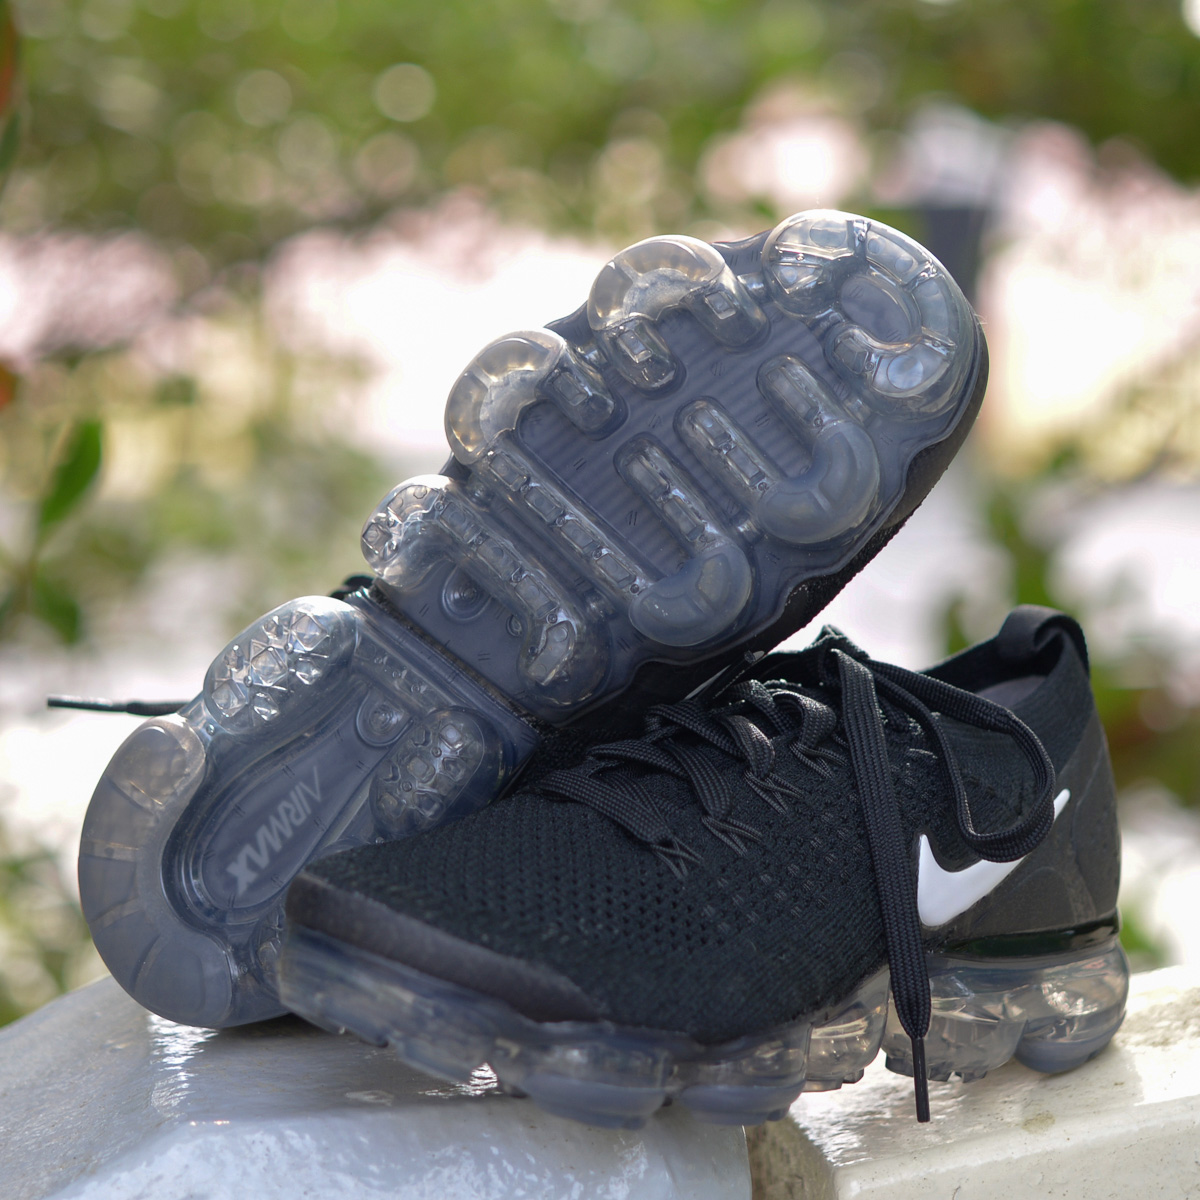 1518f29c4f0e8 NIKE W AIR VAPORMAX FLYKNIT 2 (Nike women air vapor max fried food knit 2)  BLACK/WHITE-DARK GREY-METALLIC SILVER 18SP-S